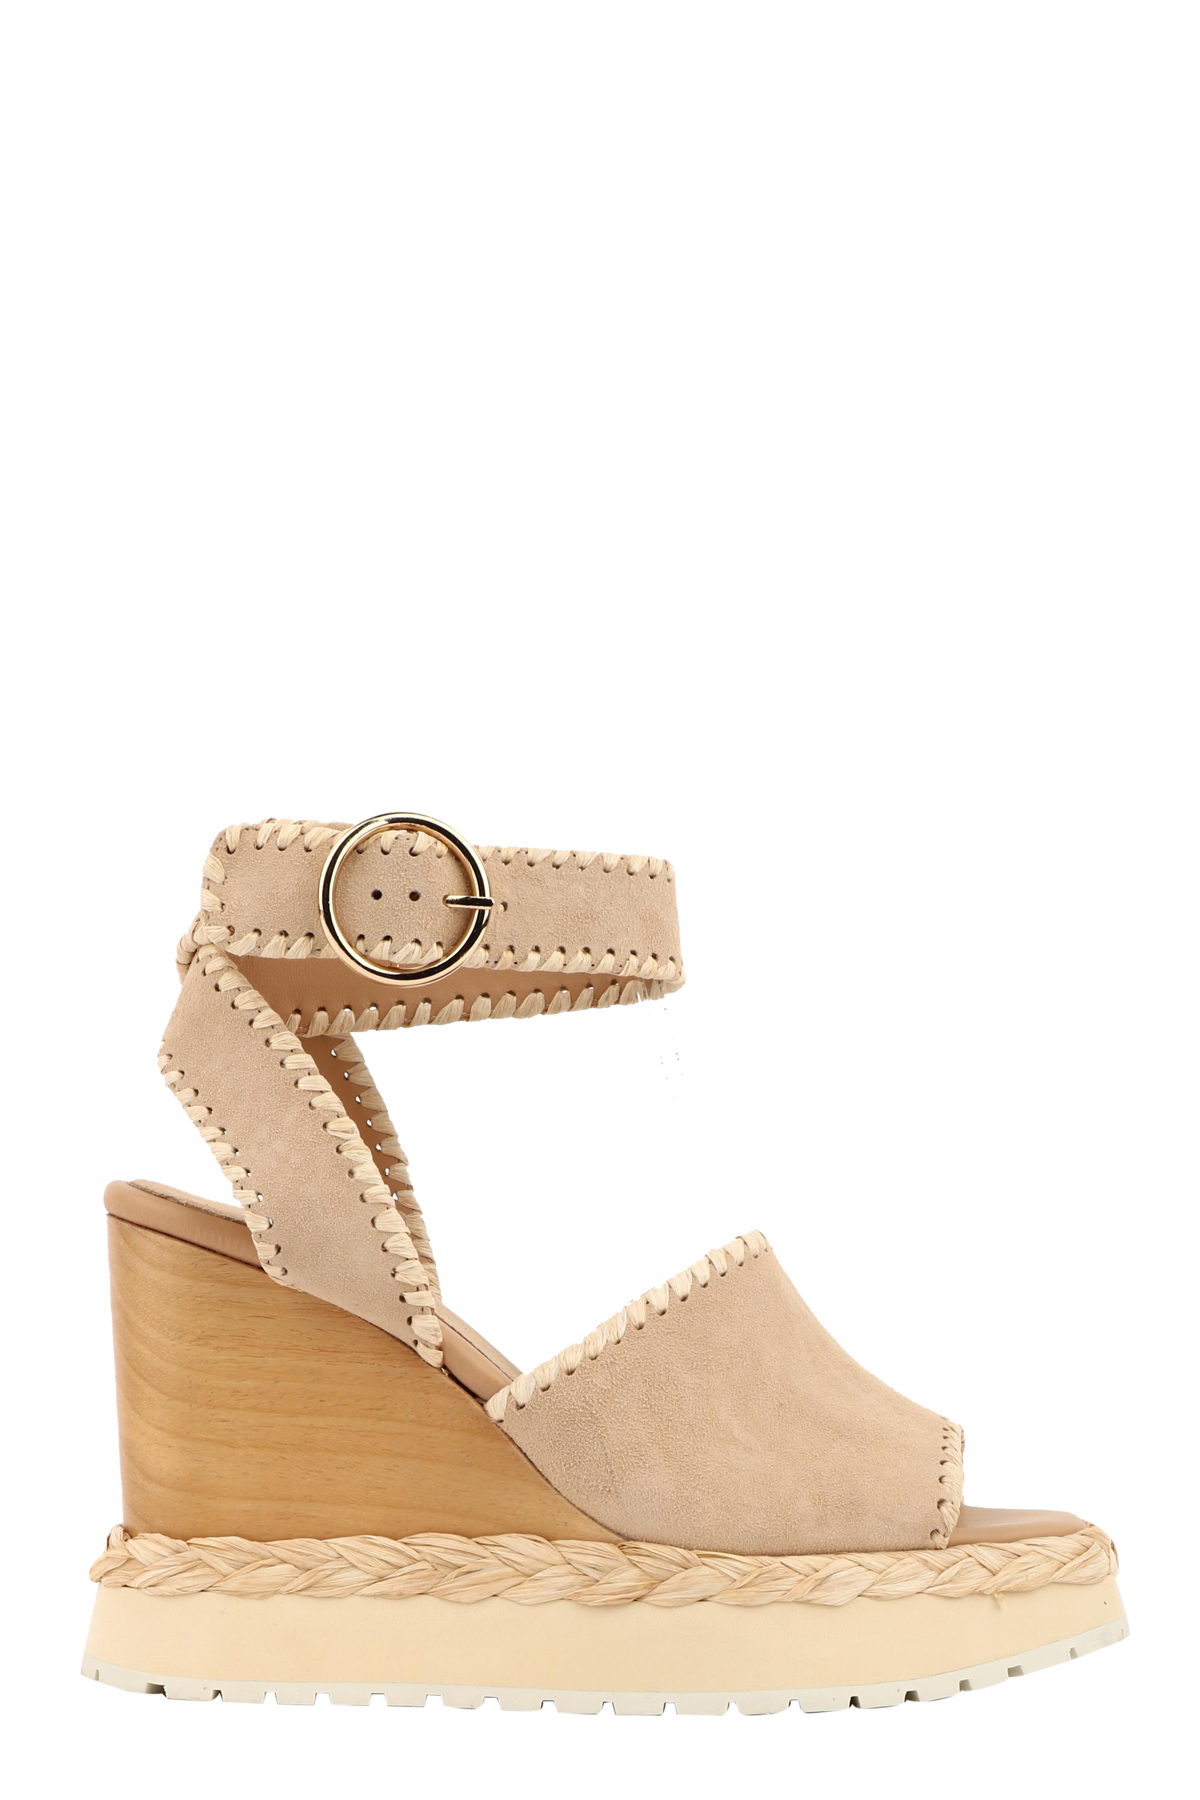 Paloma Barceló PALOMA BARCEL WITH HEEL BEIGE